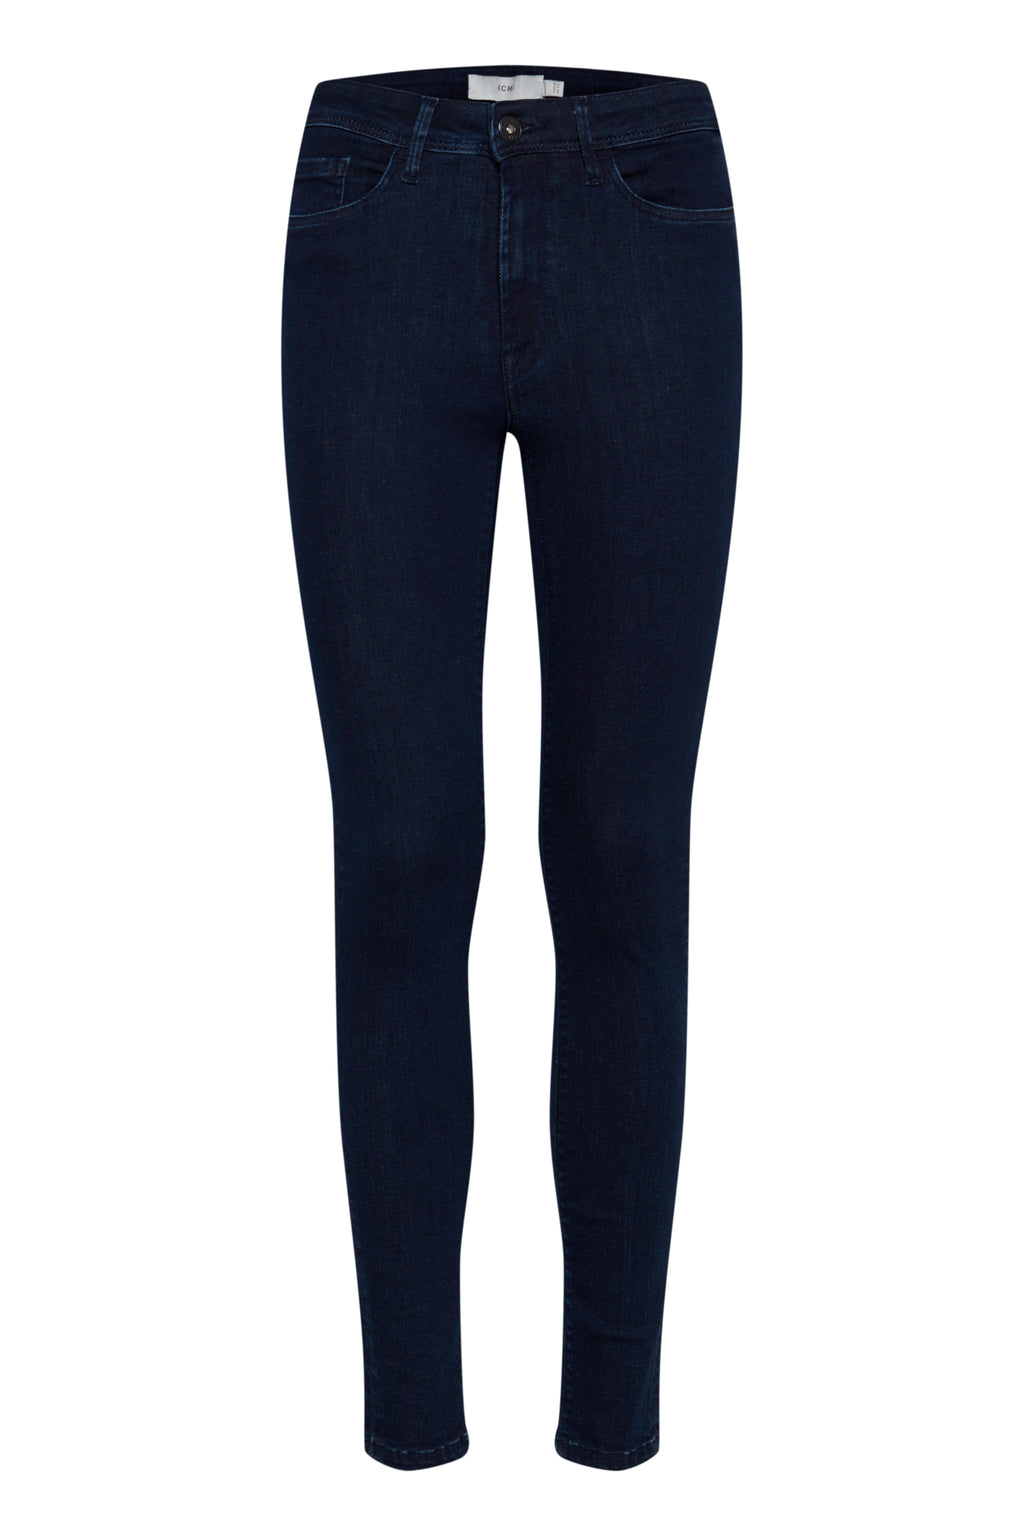 ichi-erin-jeans-authentic-blue-eva-lucia-boutique-perth-scotland